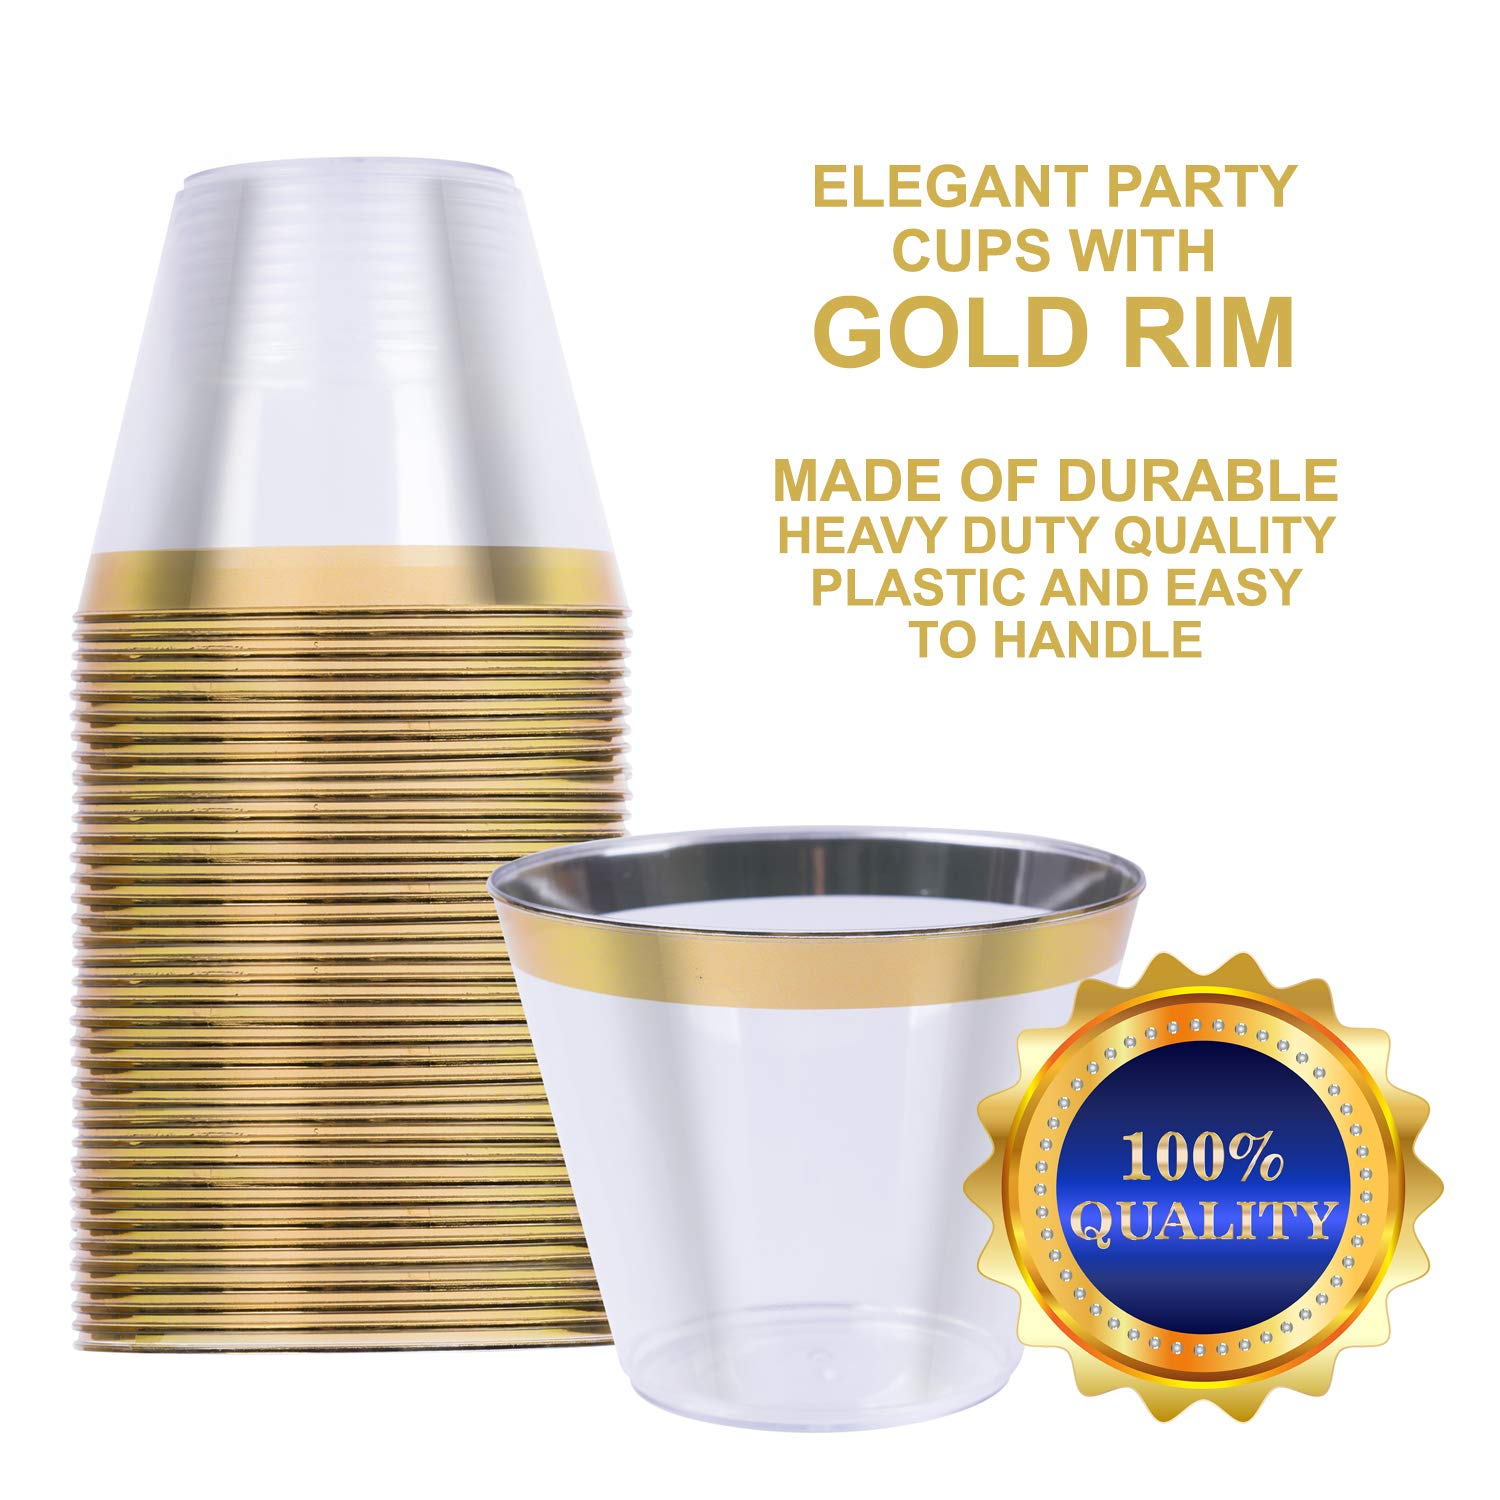 110 Plastic Cups with Gold Rim 9 Oz Disposable & Reusable Elegant Party Cups - Clear Plastic wine and champagne glasses for Weddings, Party & Anniversary - BPA-Free, Durable, Stackable